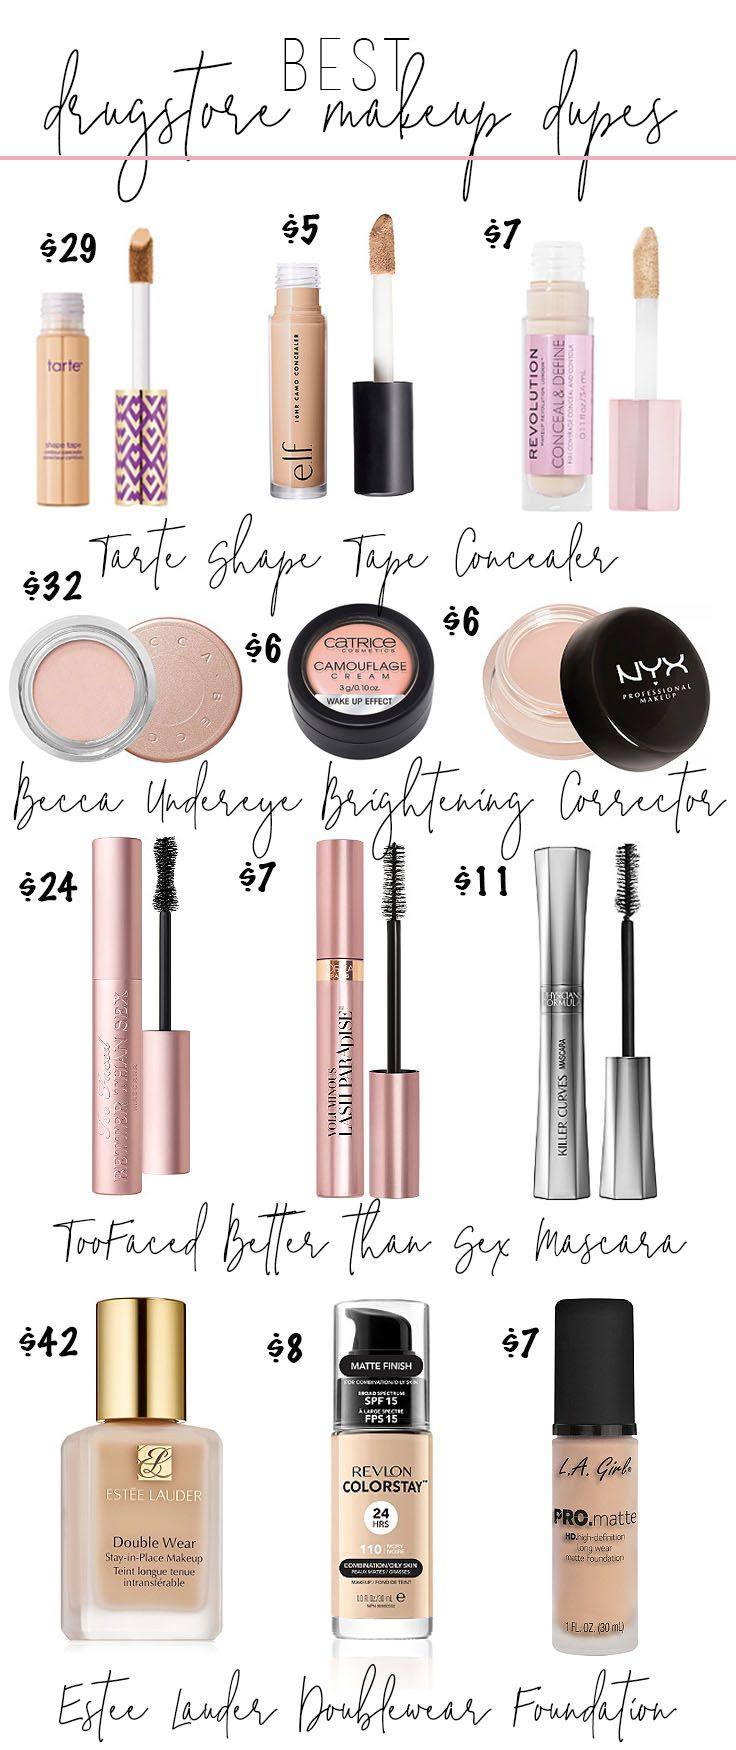 Best Makeup Dupes From the Drugstore | Drugstore Makeup Dupes | Stephanie Pernas